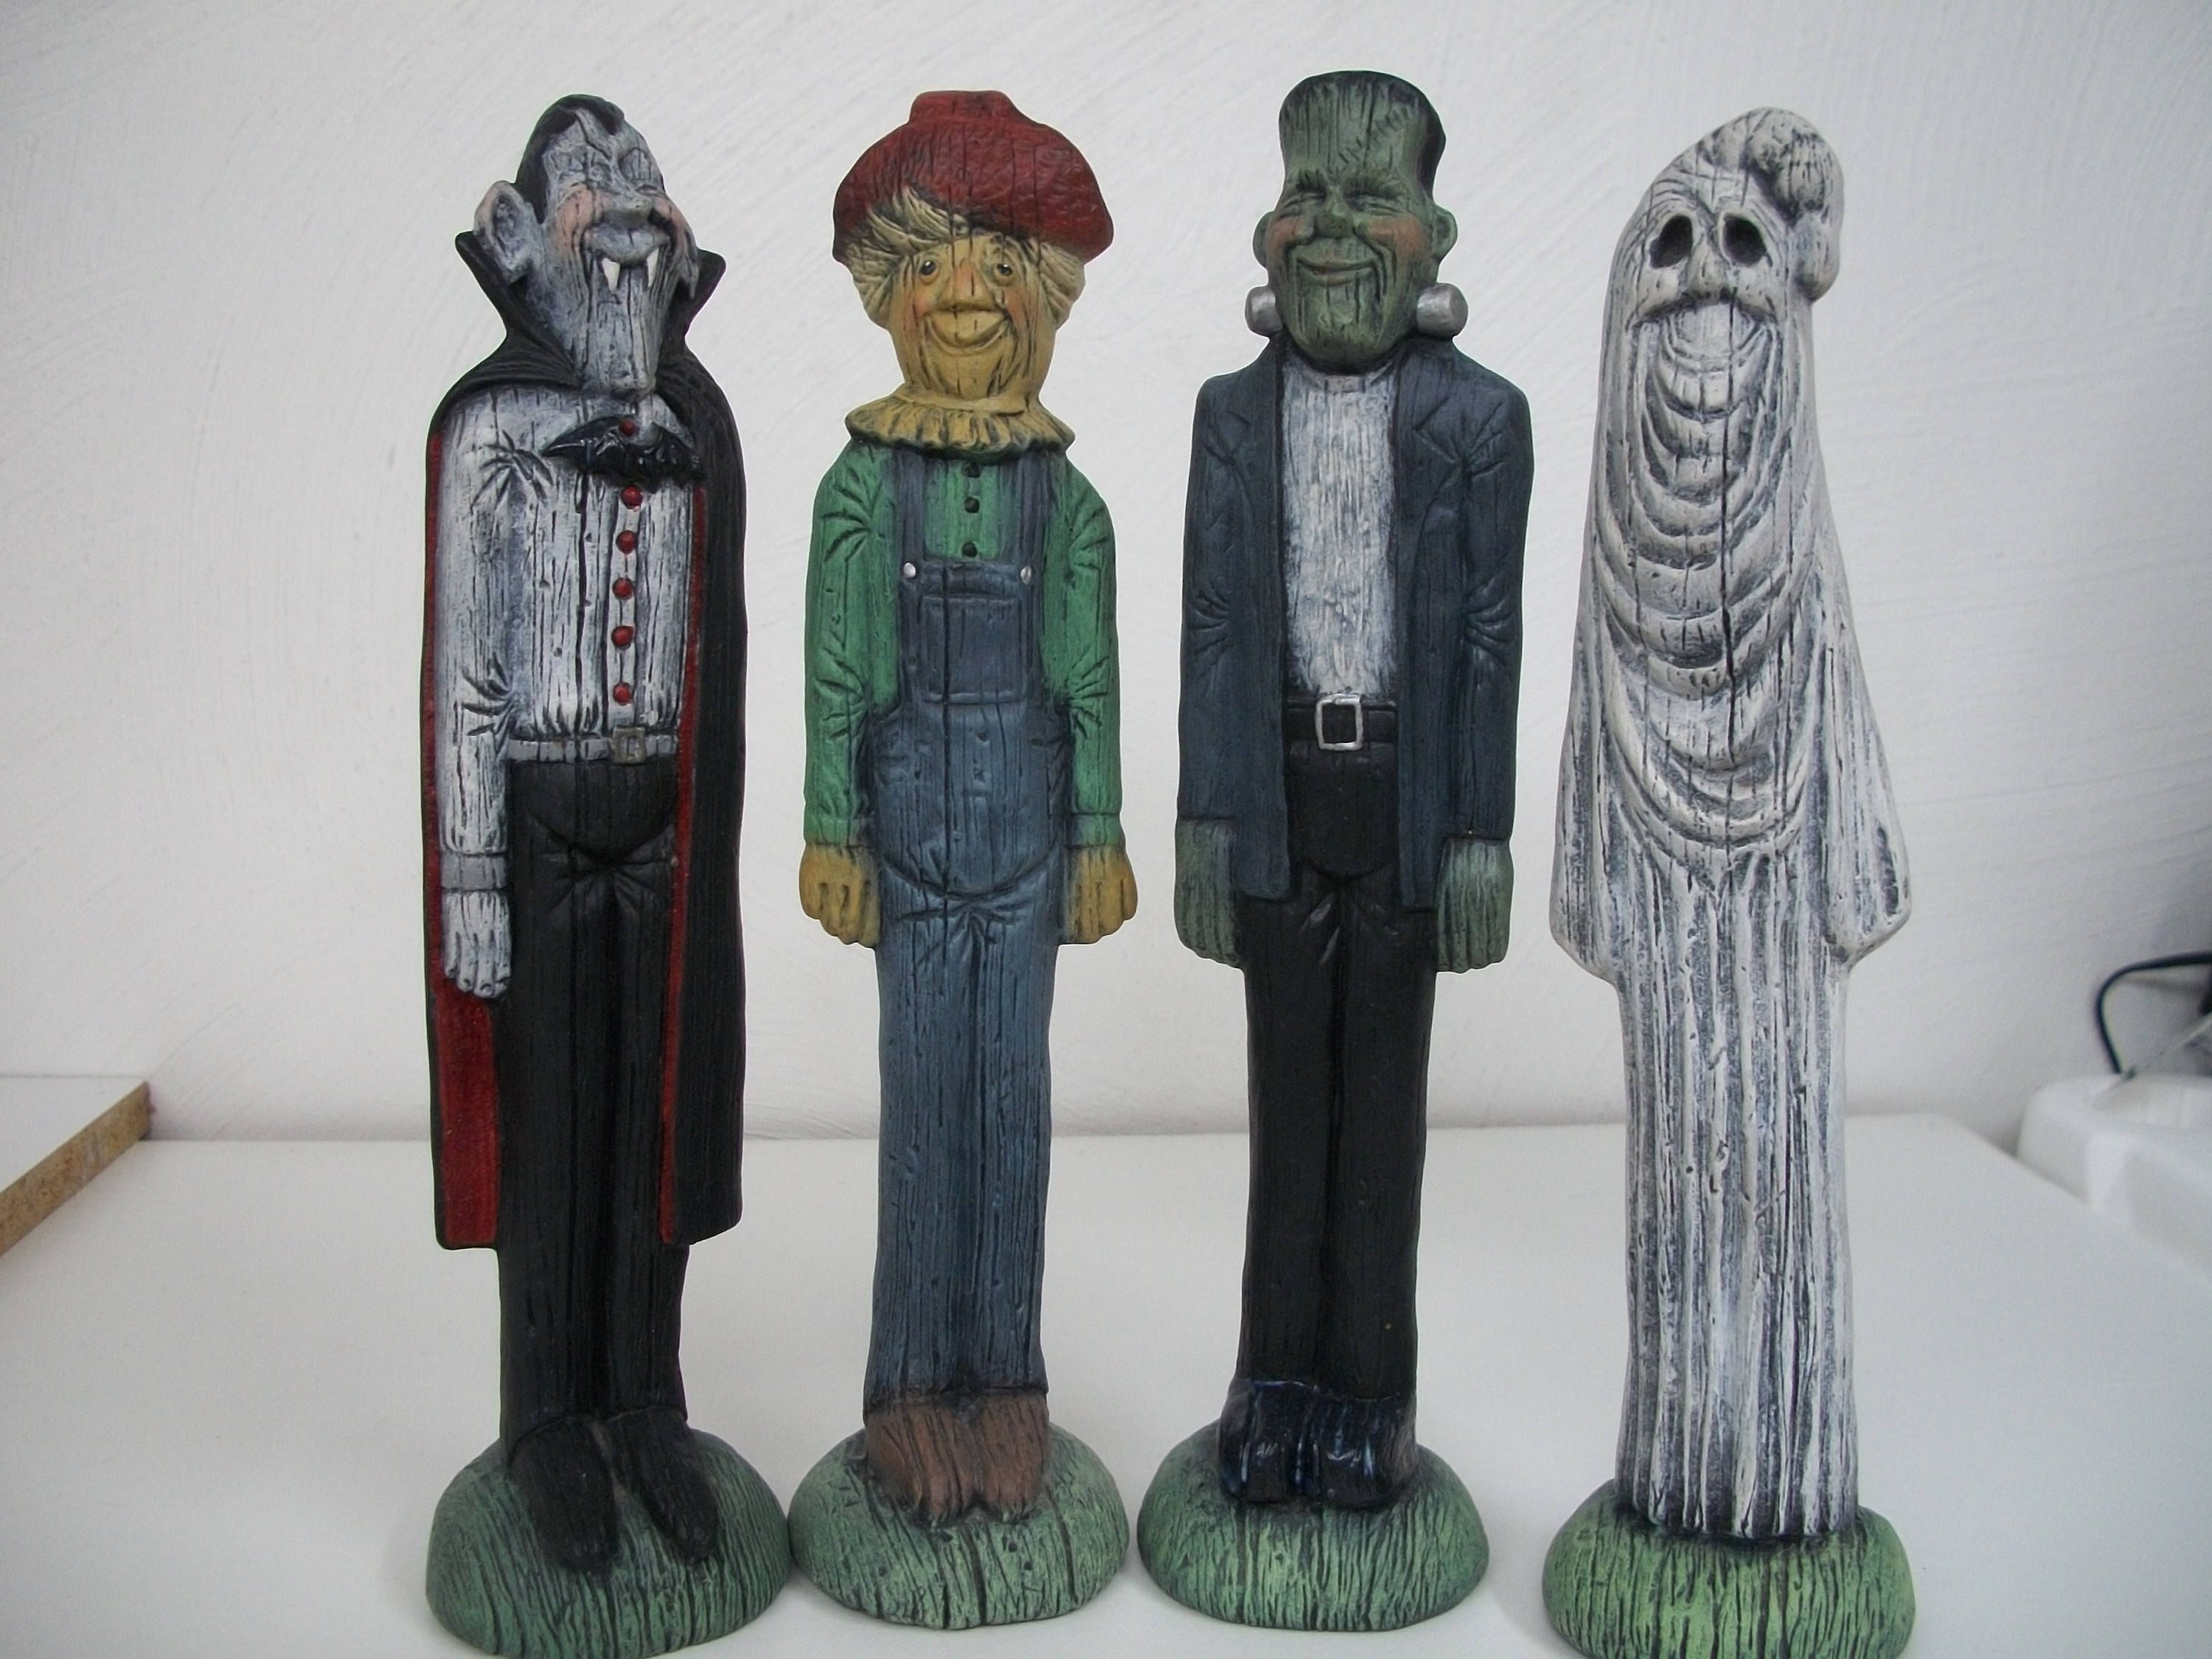 ceramic halloween vampirefrankensteinghostscarecrow halloween decorations set of 4 by cathysceramics - Vampire Halloween Decorations